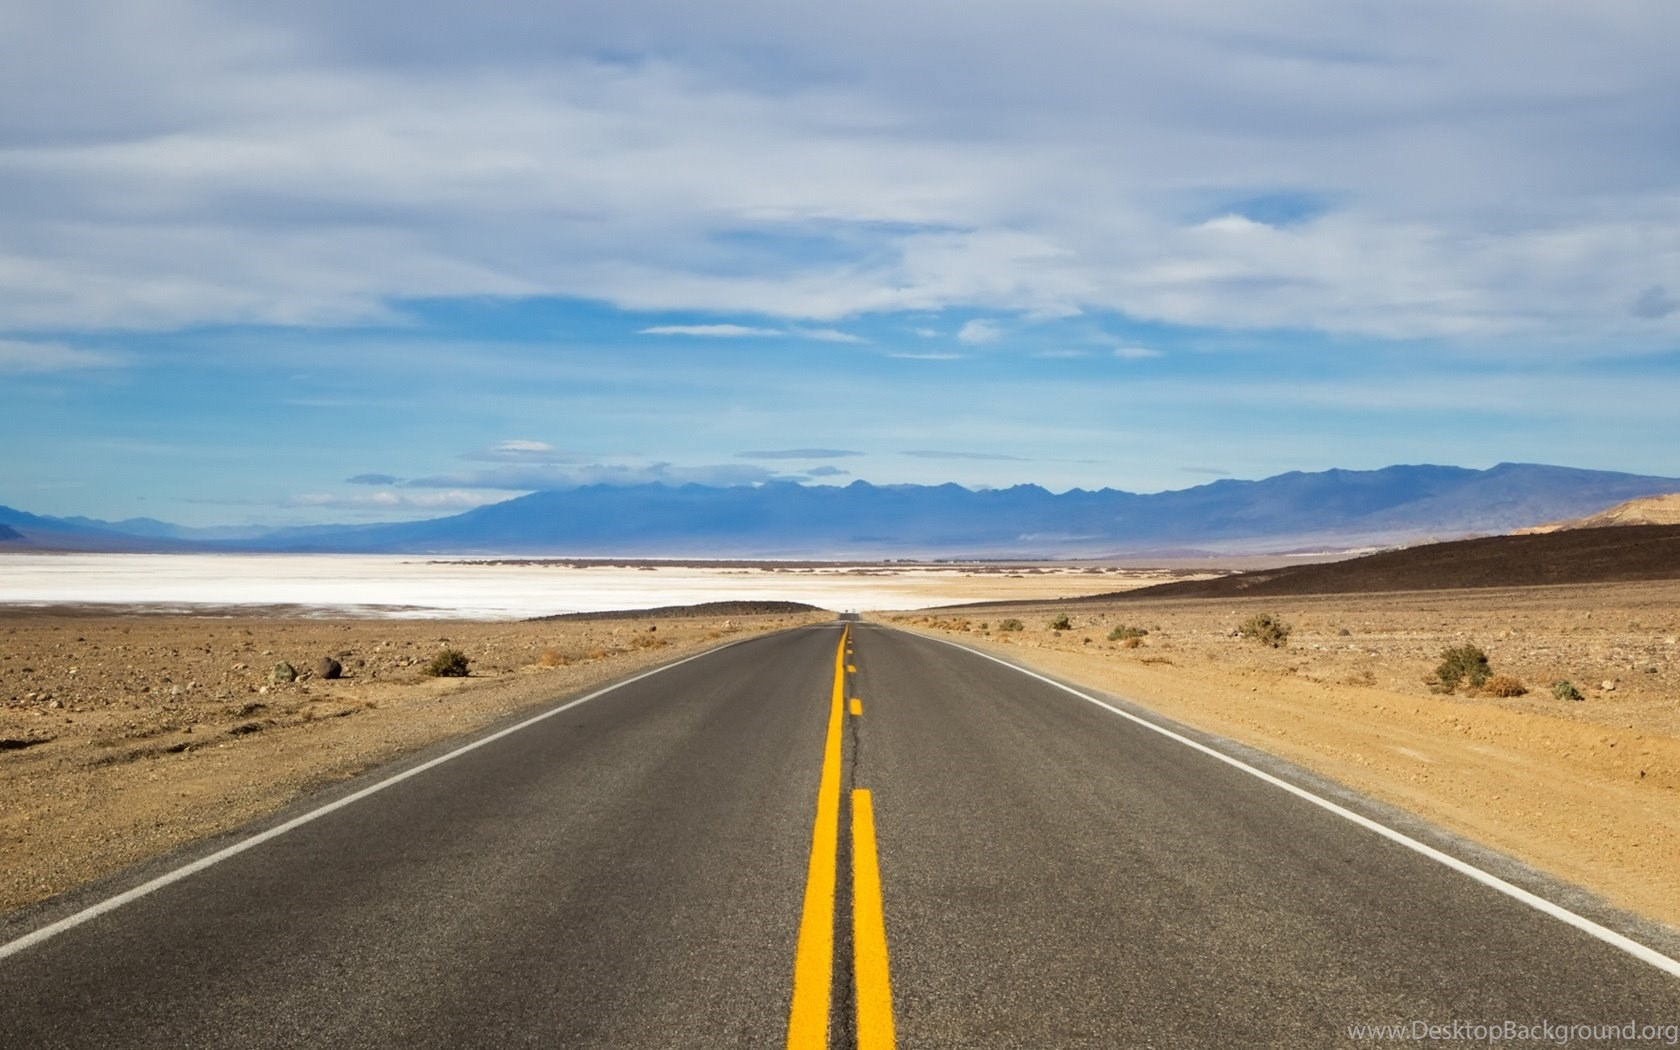 Rush Hour In Death Valley 1680x1050 Wallpapers Desktop Background Images, Photos, Reviews